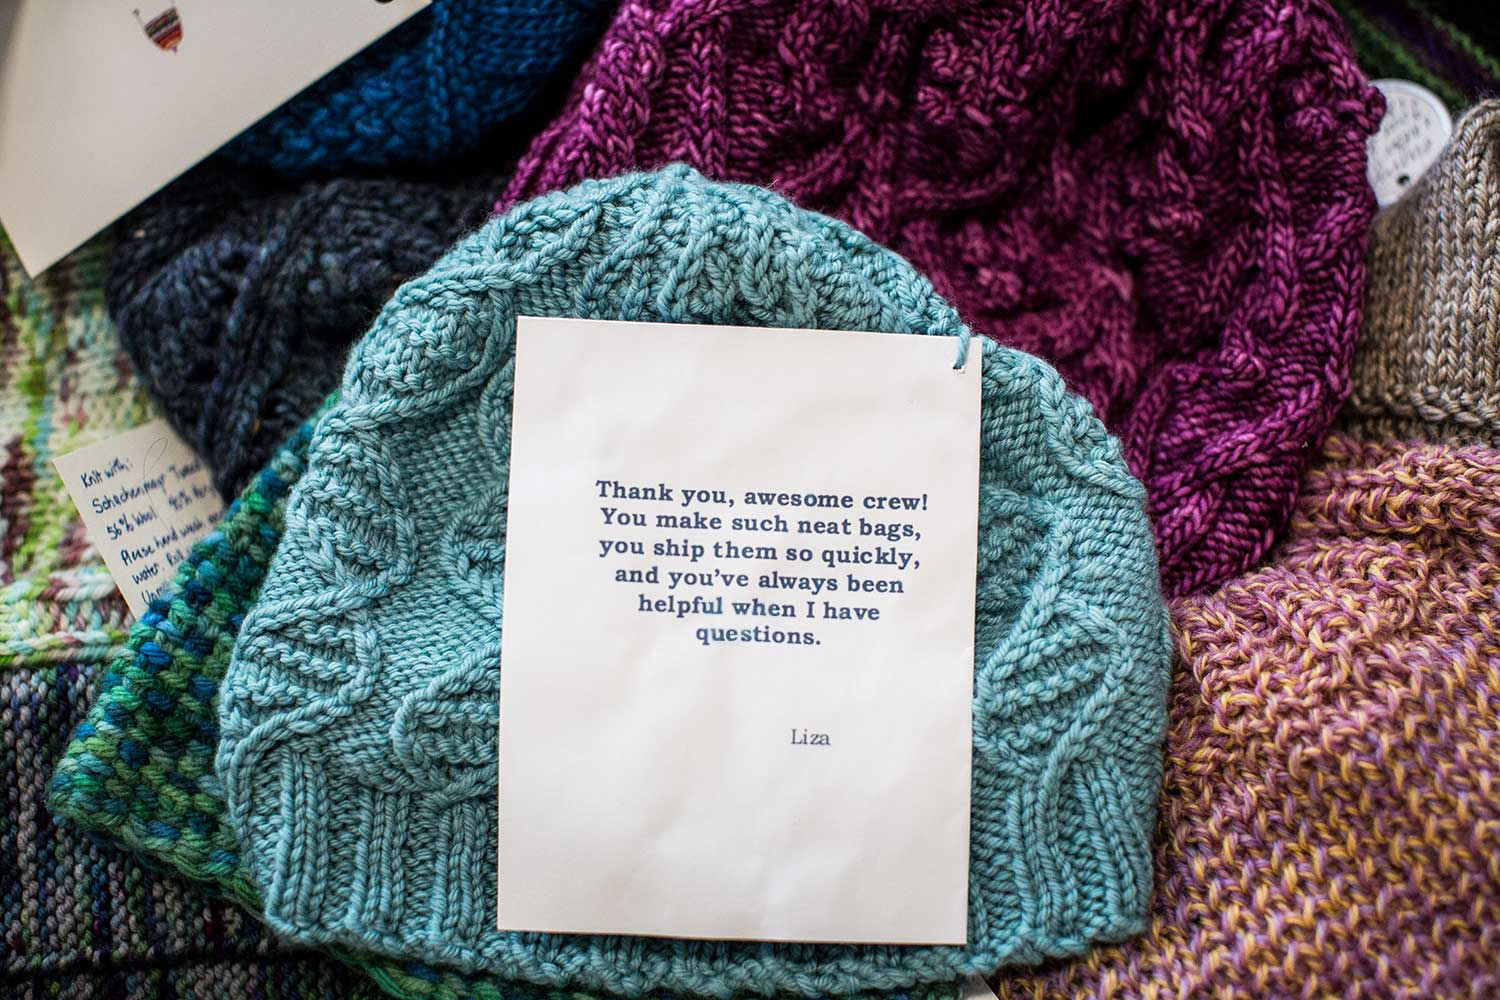 Hand-knitted hats for the TOM BIHN crew made by the TOM BIHN Ravelry Group